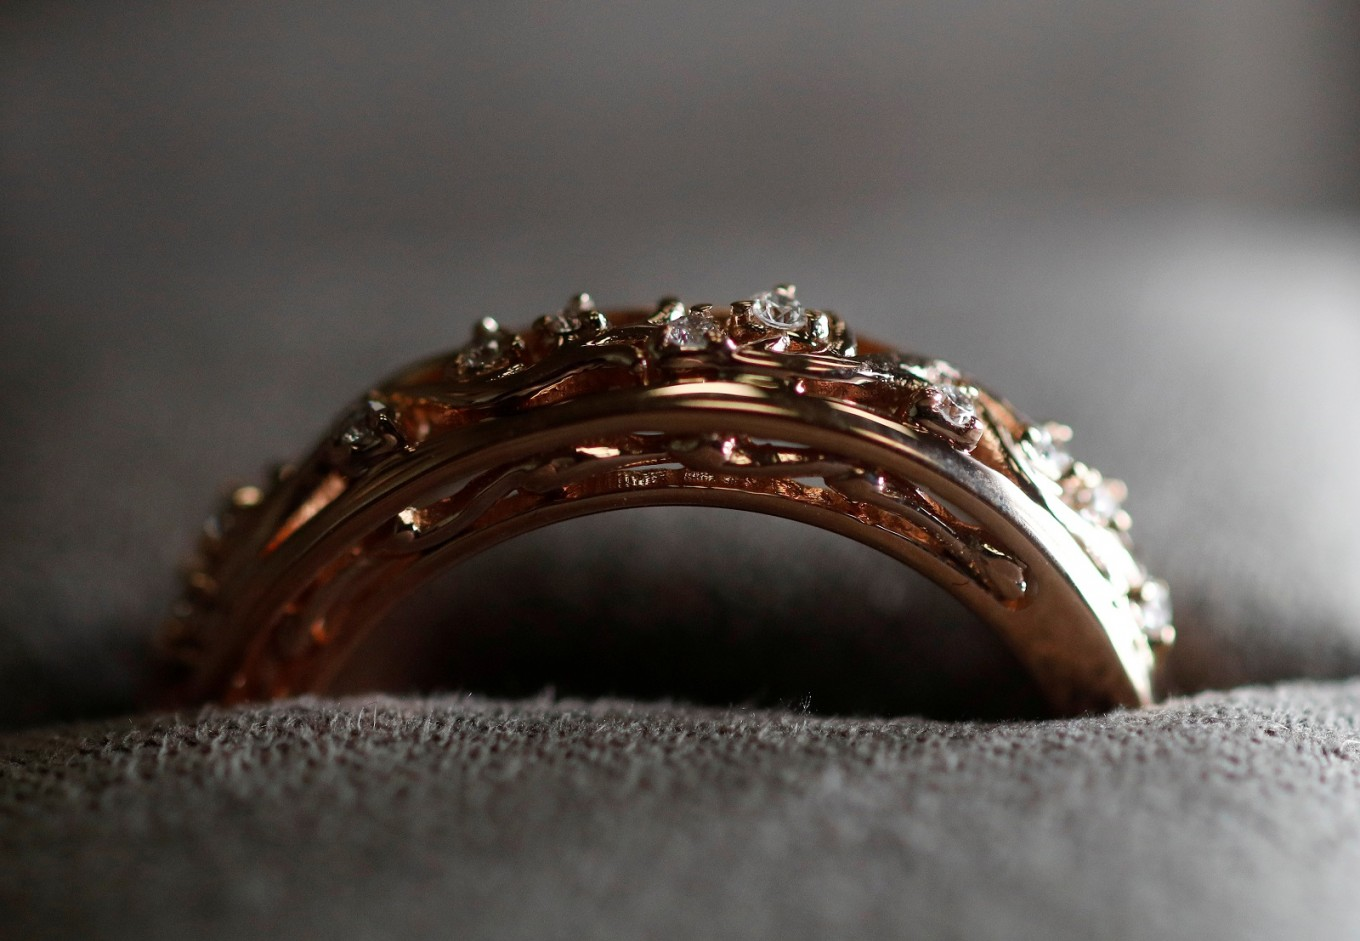 Markles wedding ring to follow royal tradition of Welsh gold